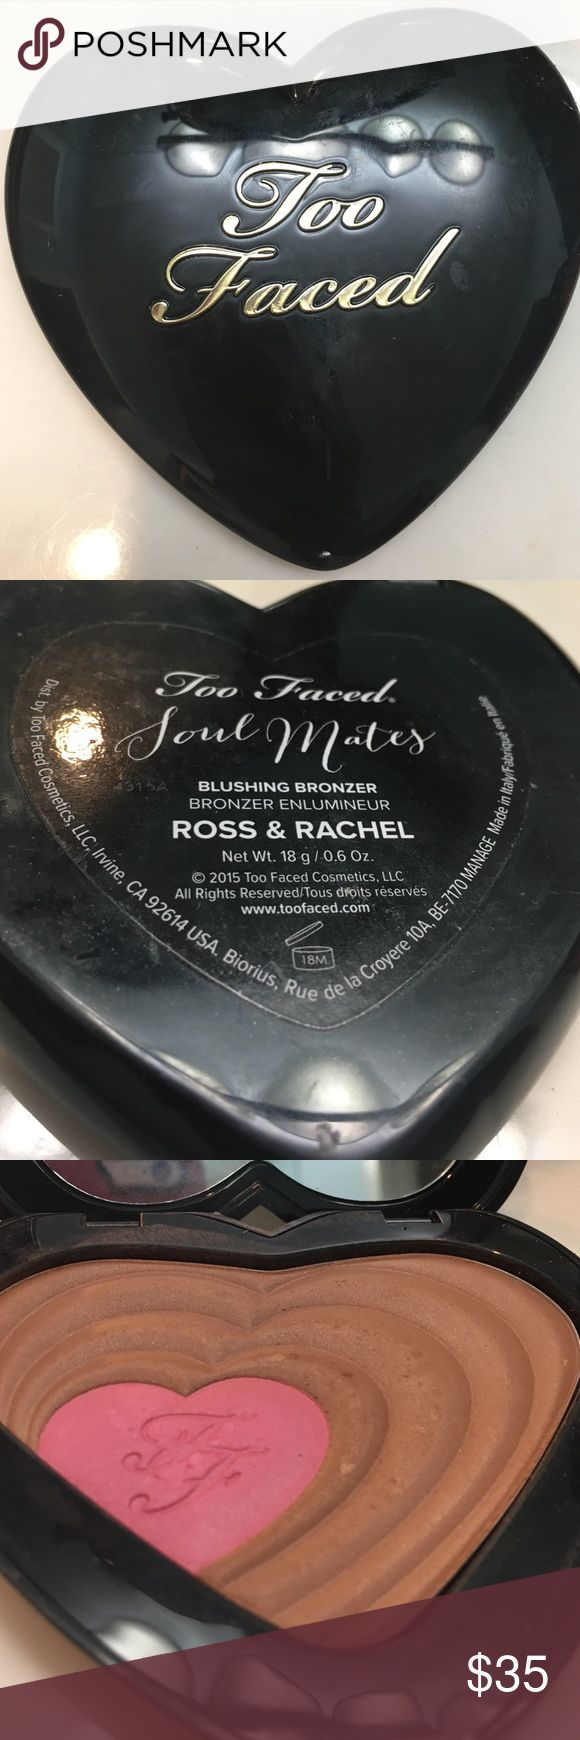 Slightly used Too Faced Blushing bronzer Too faced soul mates Ross &Rachel blushing bronzer barely used Too Faced Makeup Bronzer